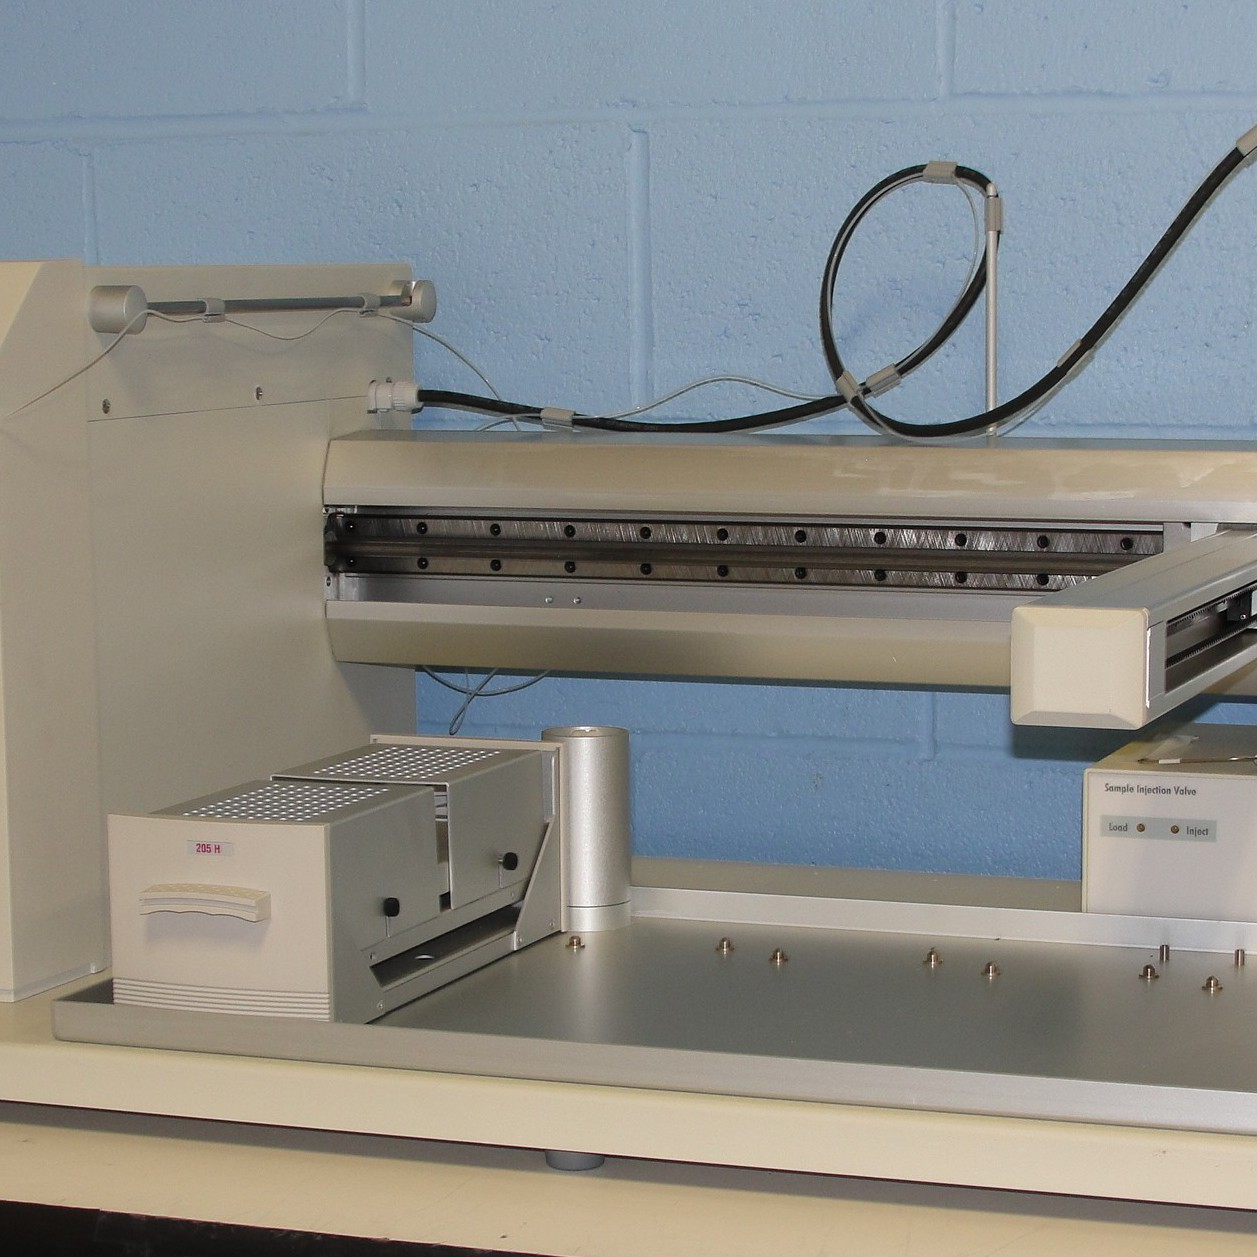 Gilson 215 Liquid Handler with 819 Sample Injection Valve Image